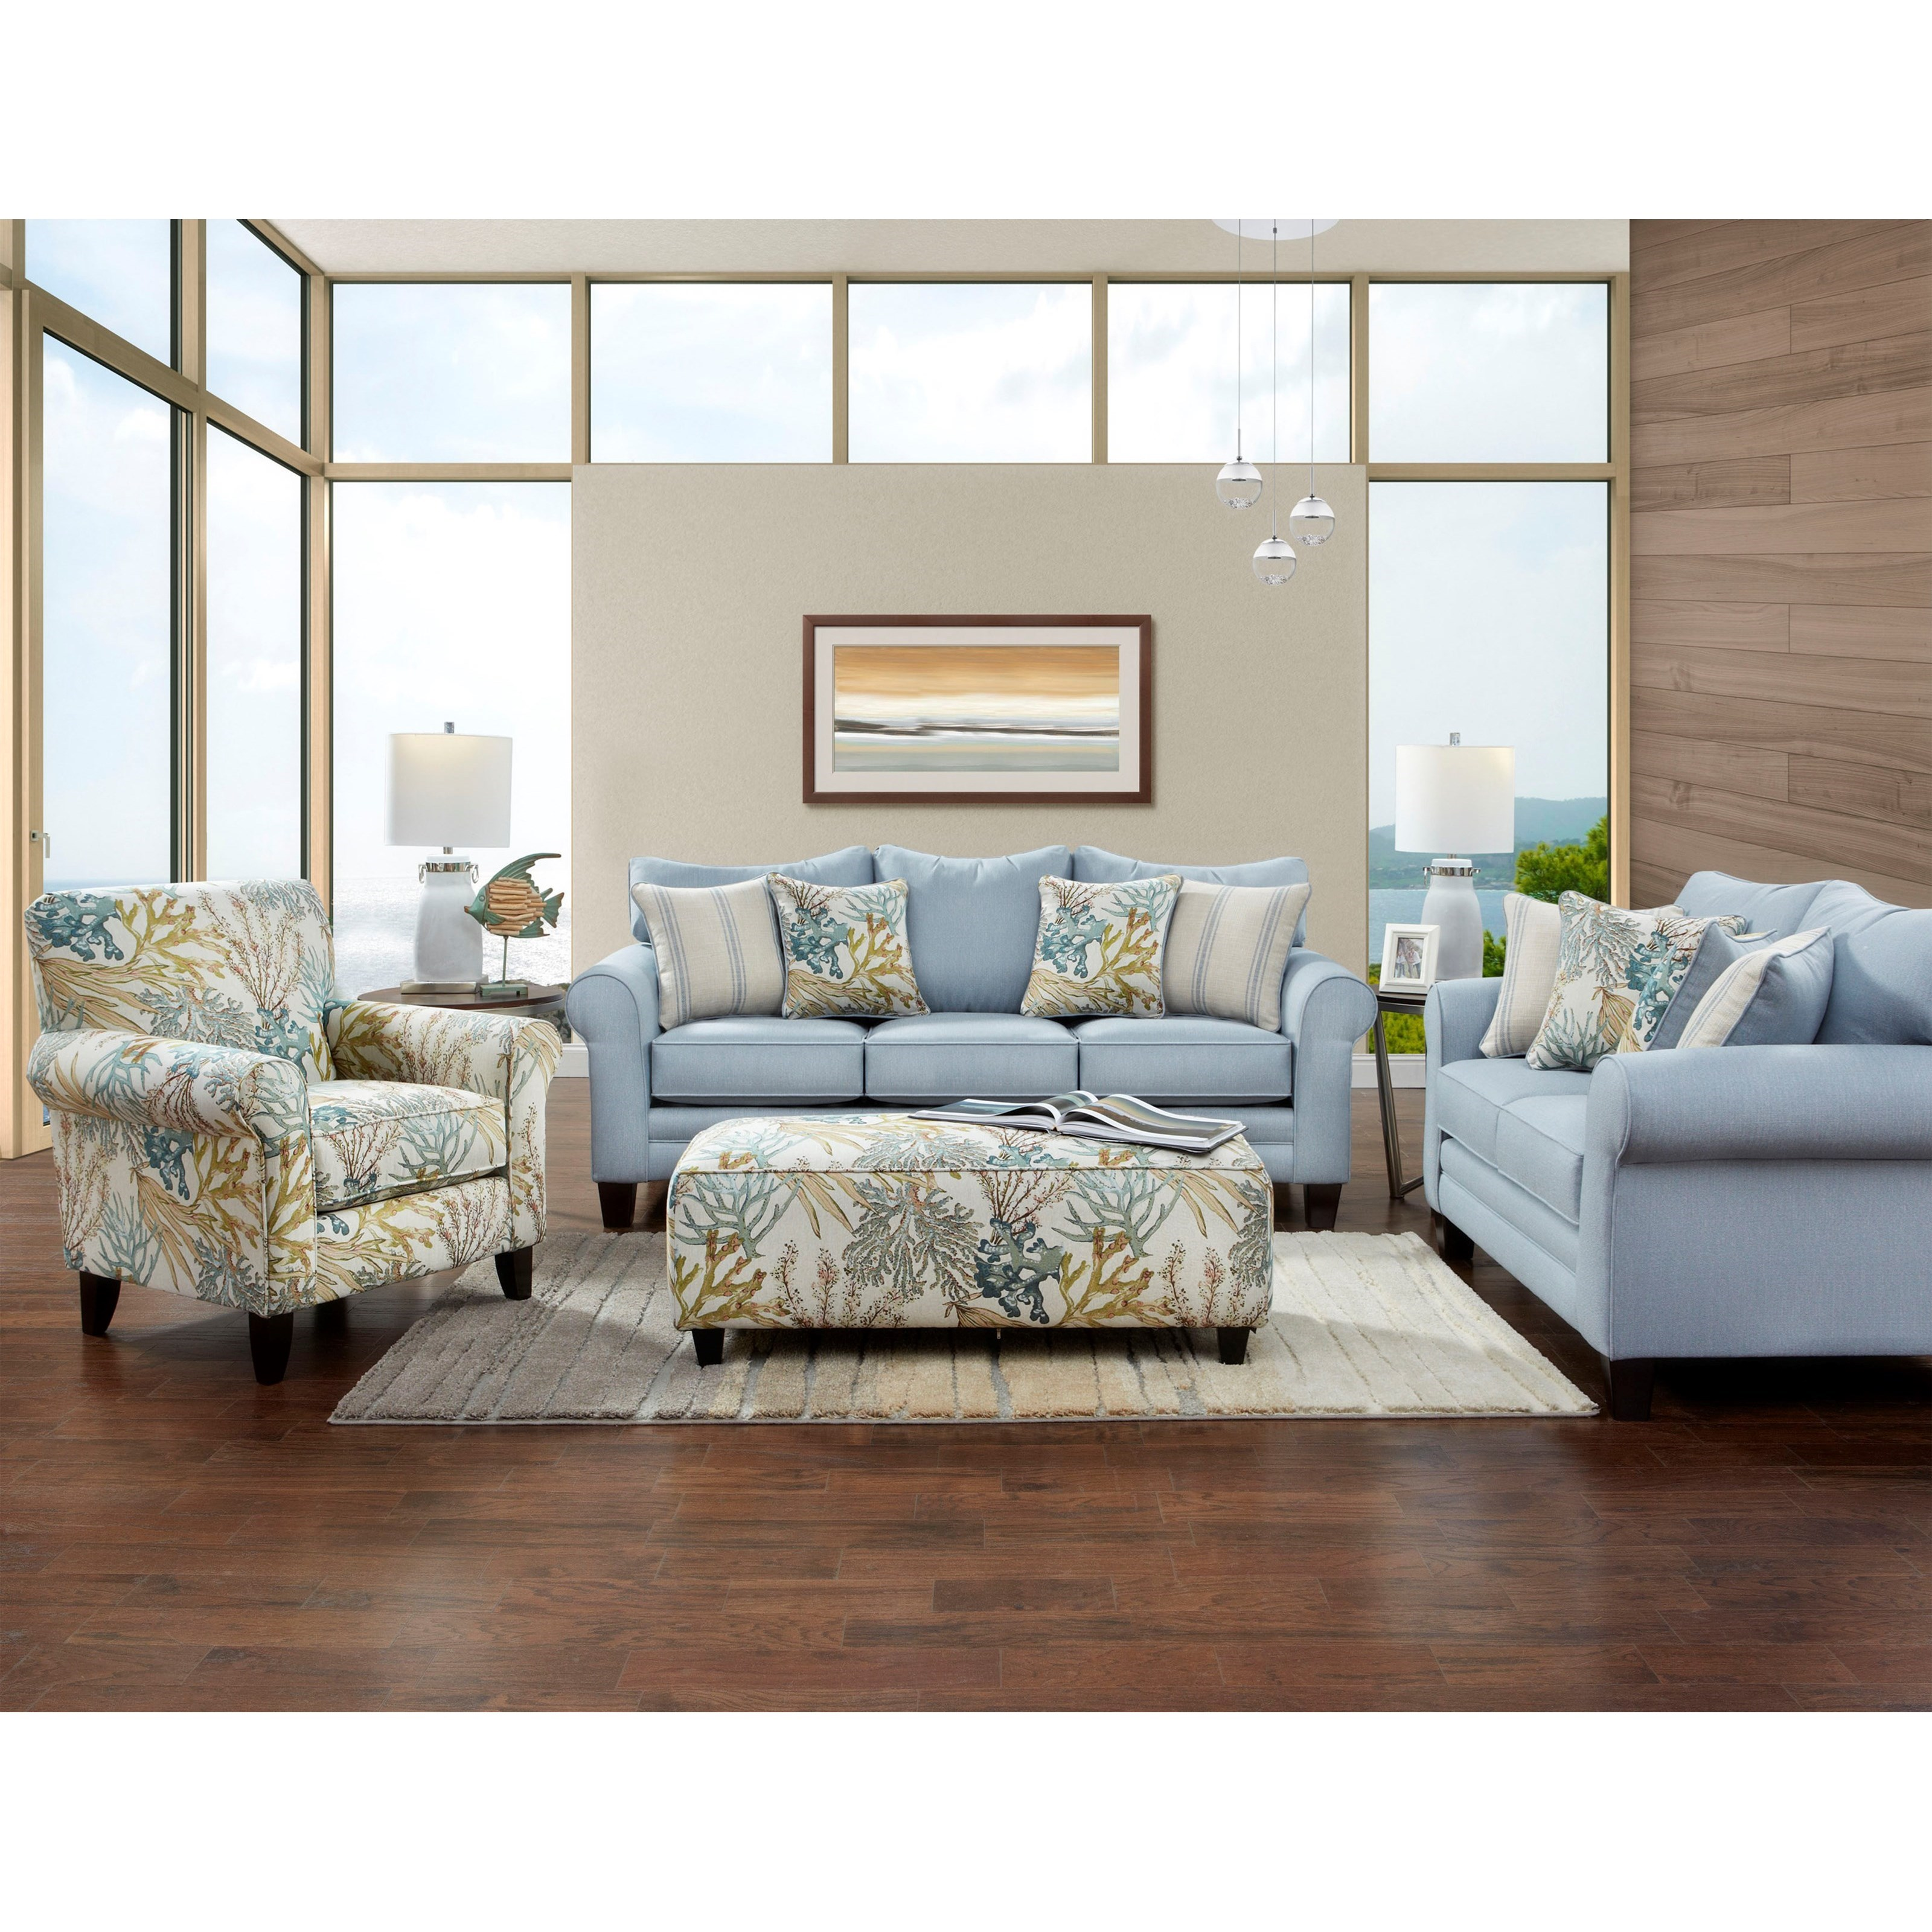 1140 LABYRINTH SKY Stationary Living Room Group by Fusion Furniture at Story & Lee Furniture